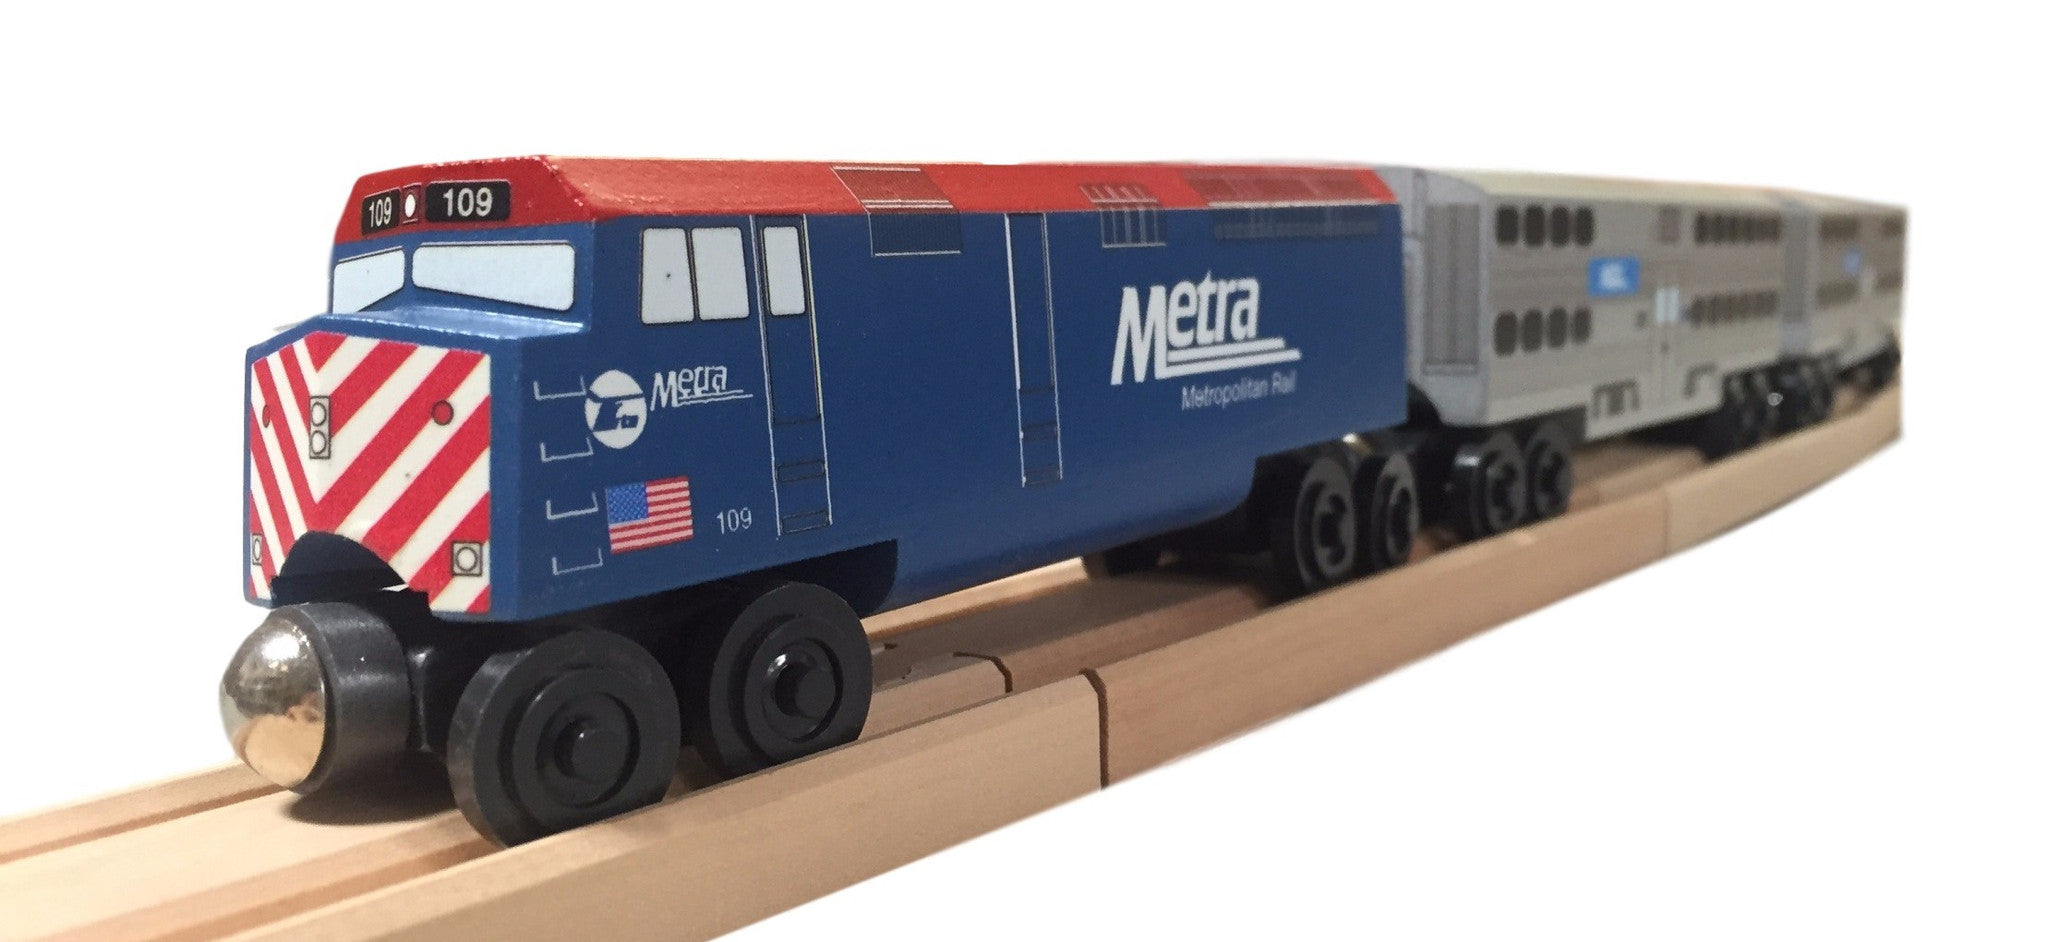 Whittle Shortline Railroad Metra F-40 Diesel Engine Wooden Toy Train with other Metra Passenger Cars